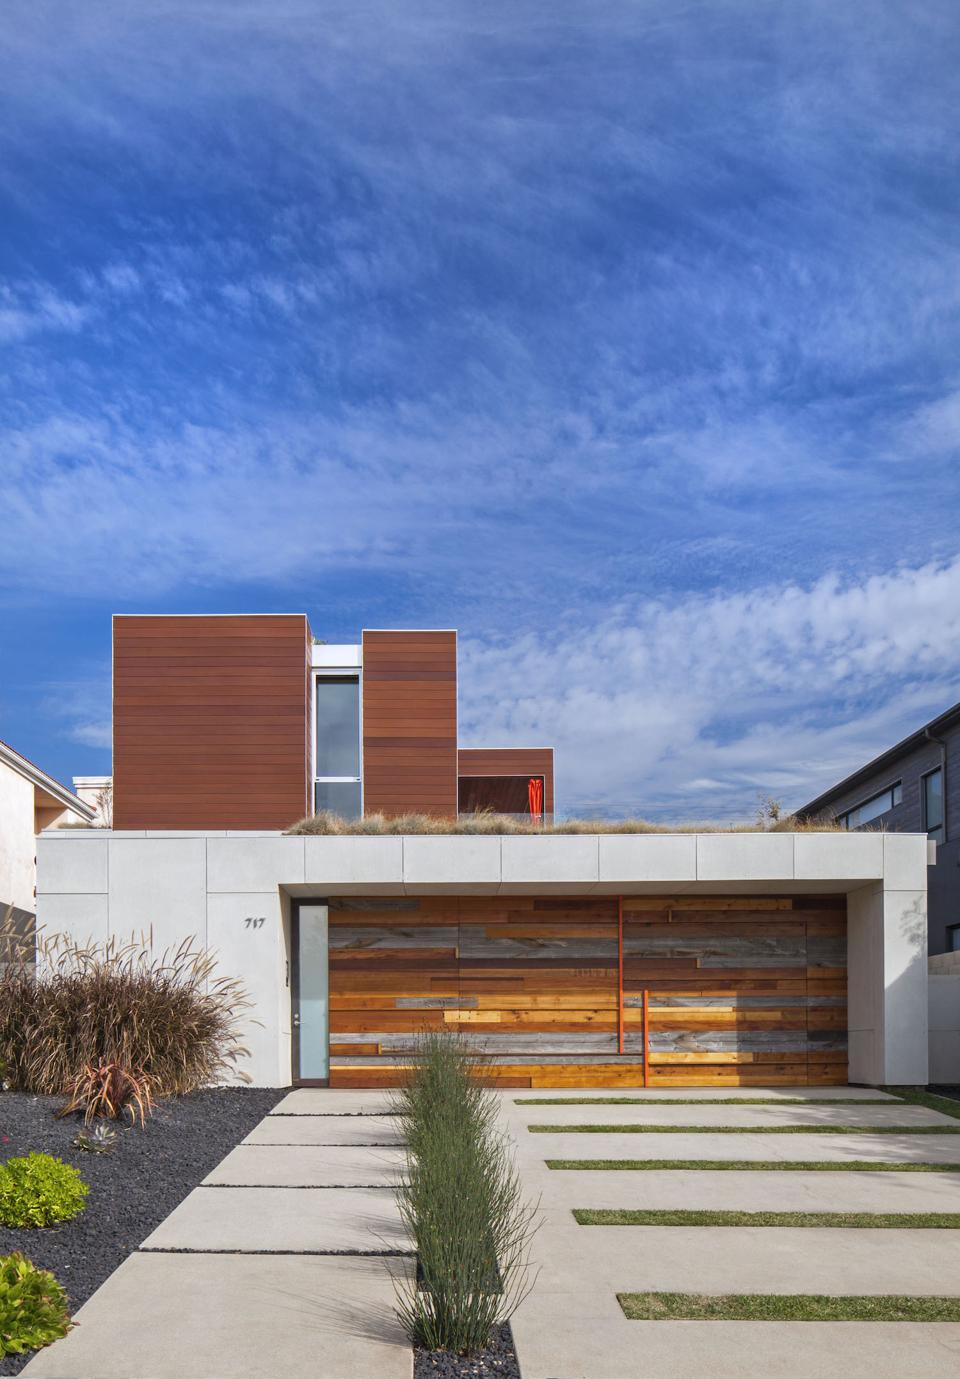 Using scrap wood and quartz, Minarc Architects designed a garage door that is a beautiful art piece and focal point of this Santa Monica house.